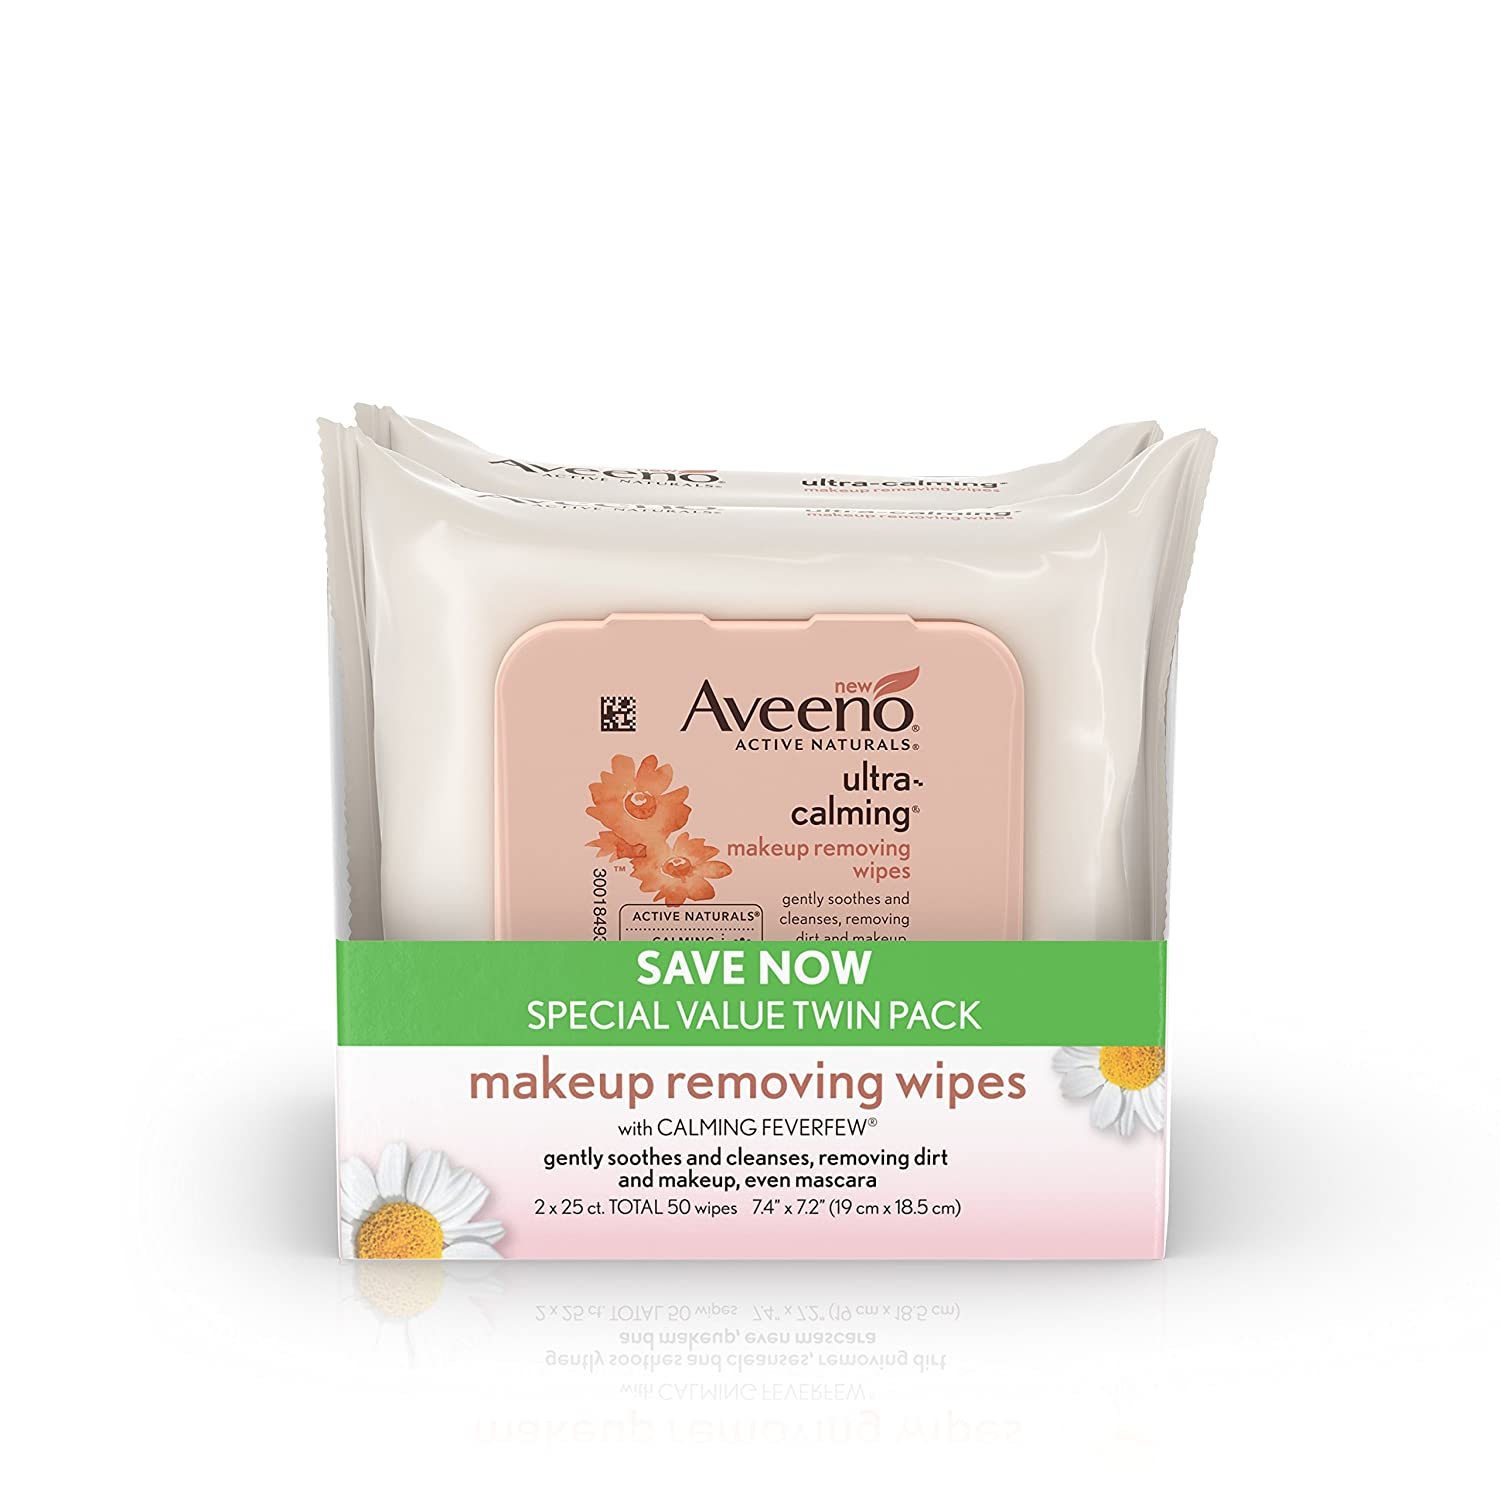 Aveeno Ultra-Calming Cleansing Makeup Removing Wipes, 25 Count, Twin Pack